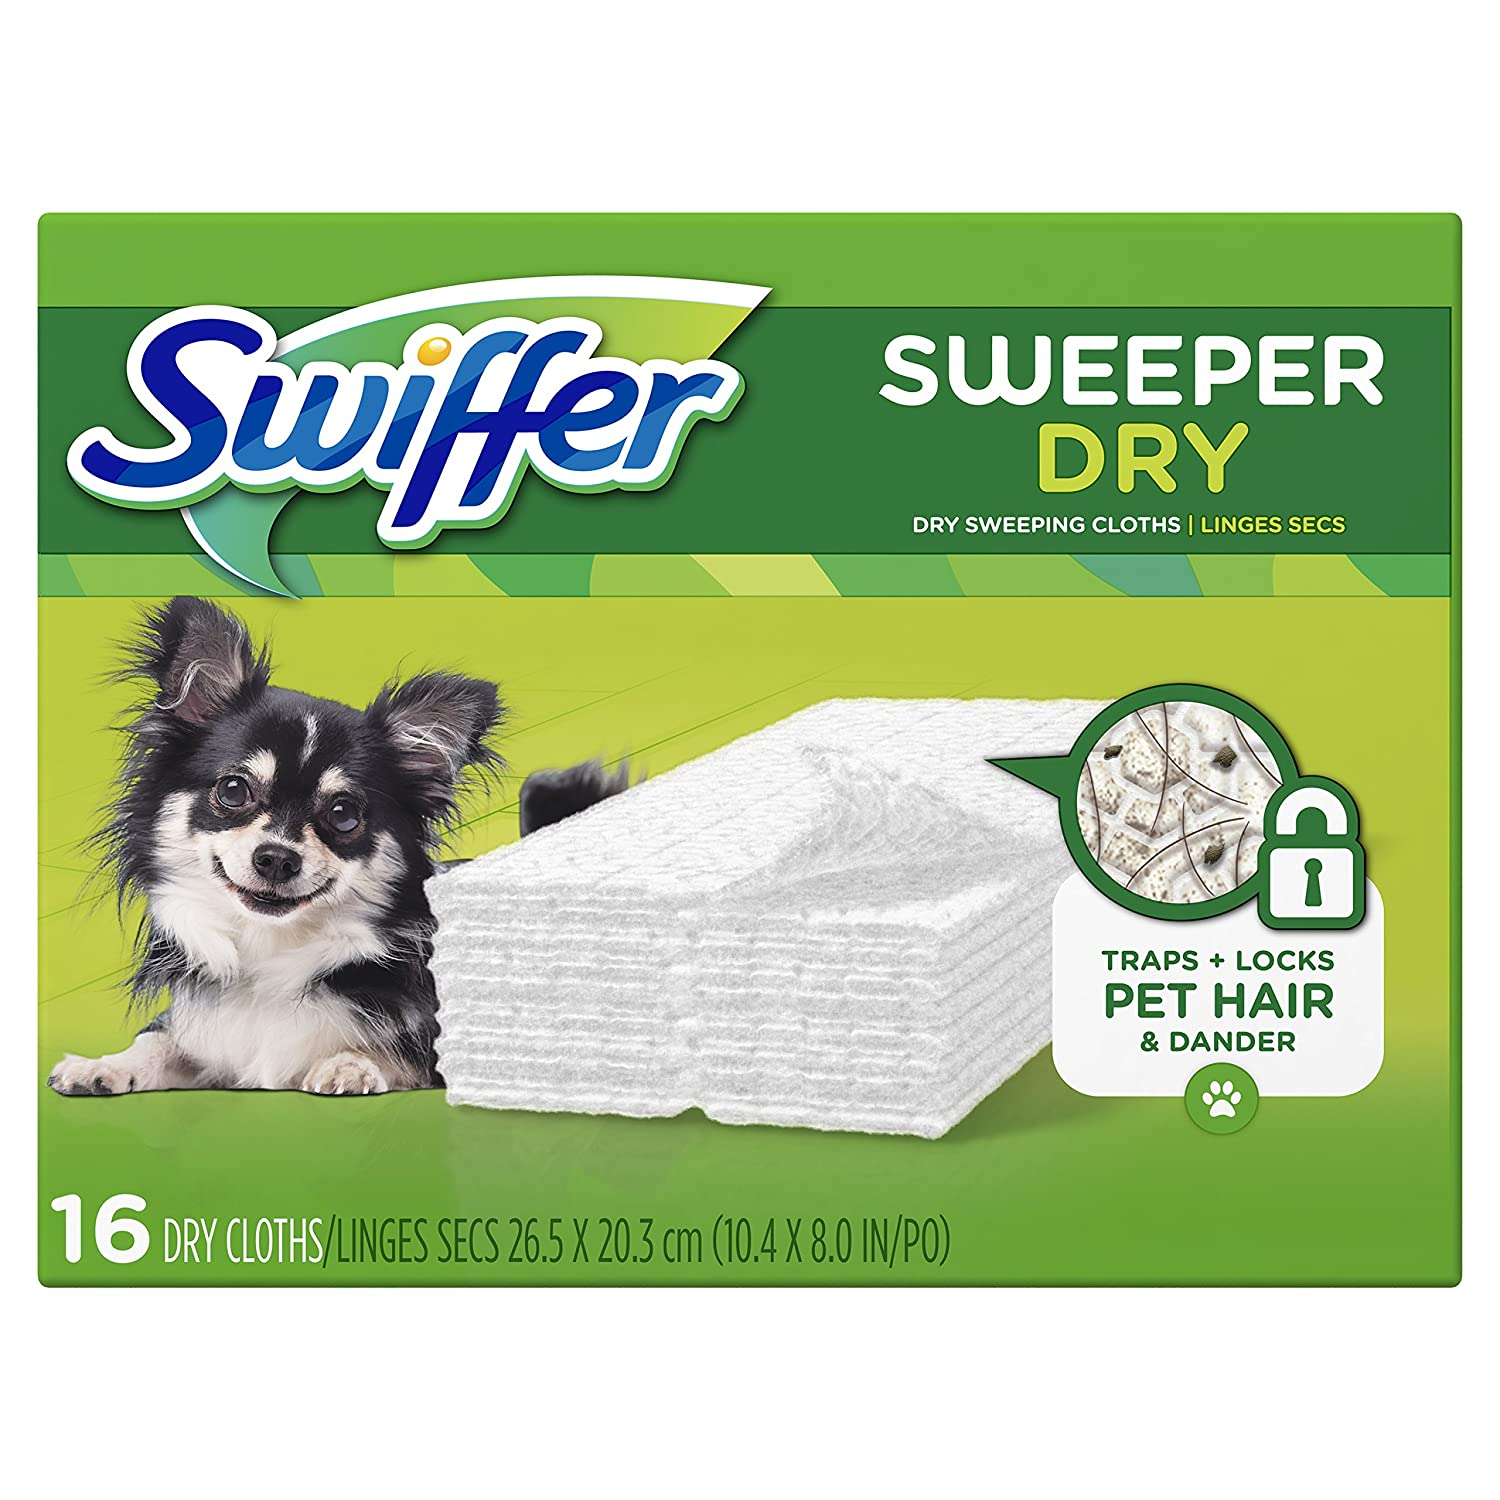 Swiffer Sweeper Dry Sweeping Cloths Traps Pet Hair, 16 Unscented Refills